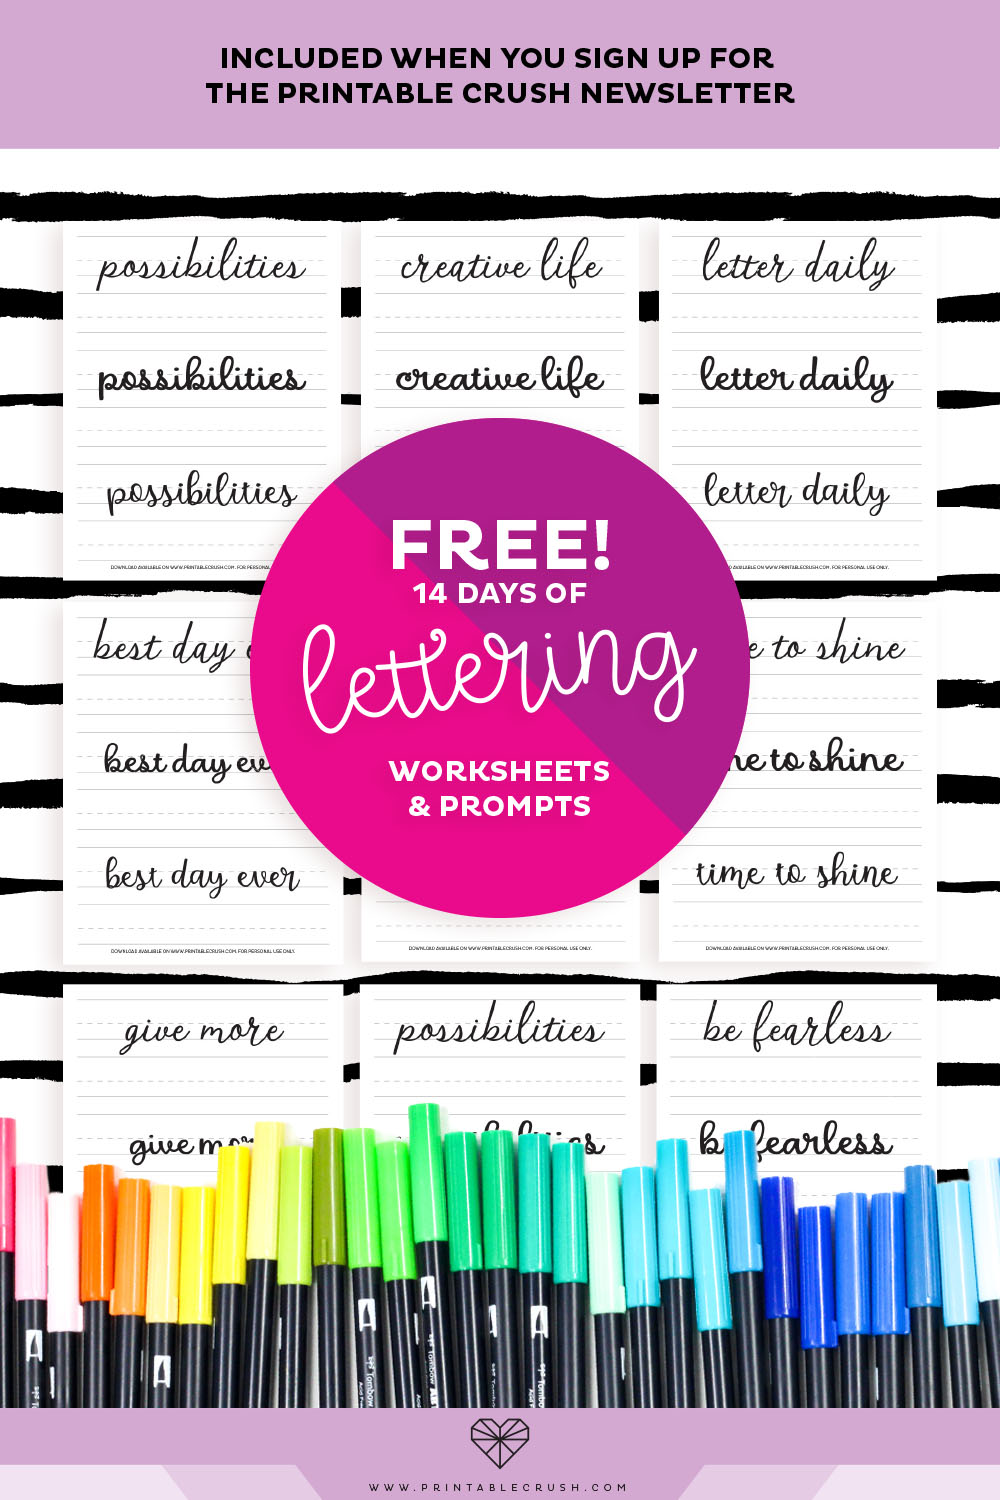 Get 14 Days of Lettering Worksheets and Prompts FREE when you sign up for the Printable Crush Newsletter!